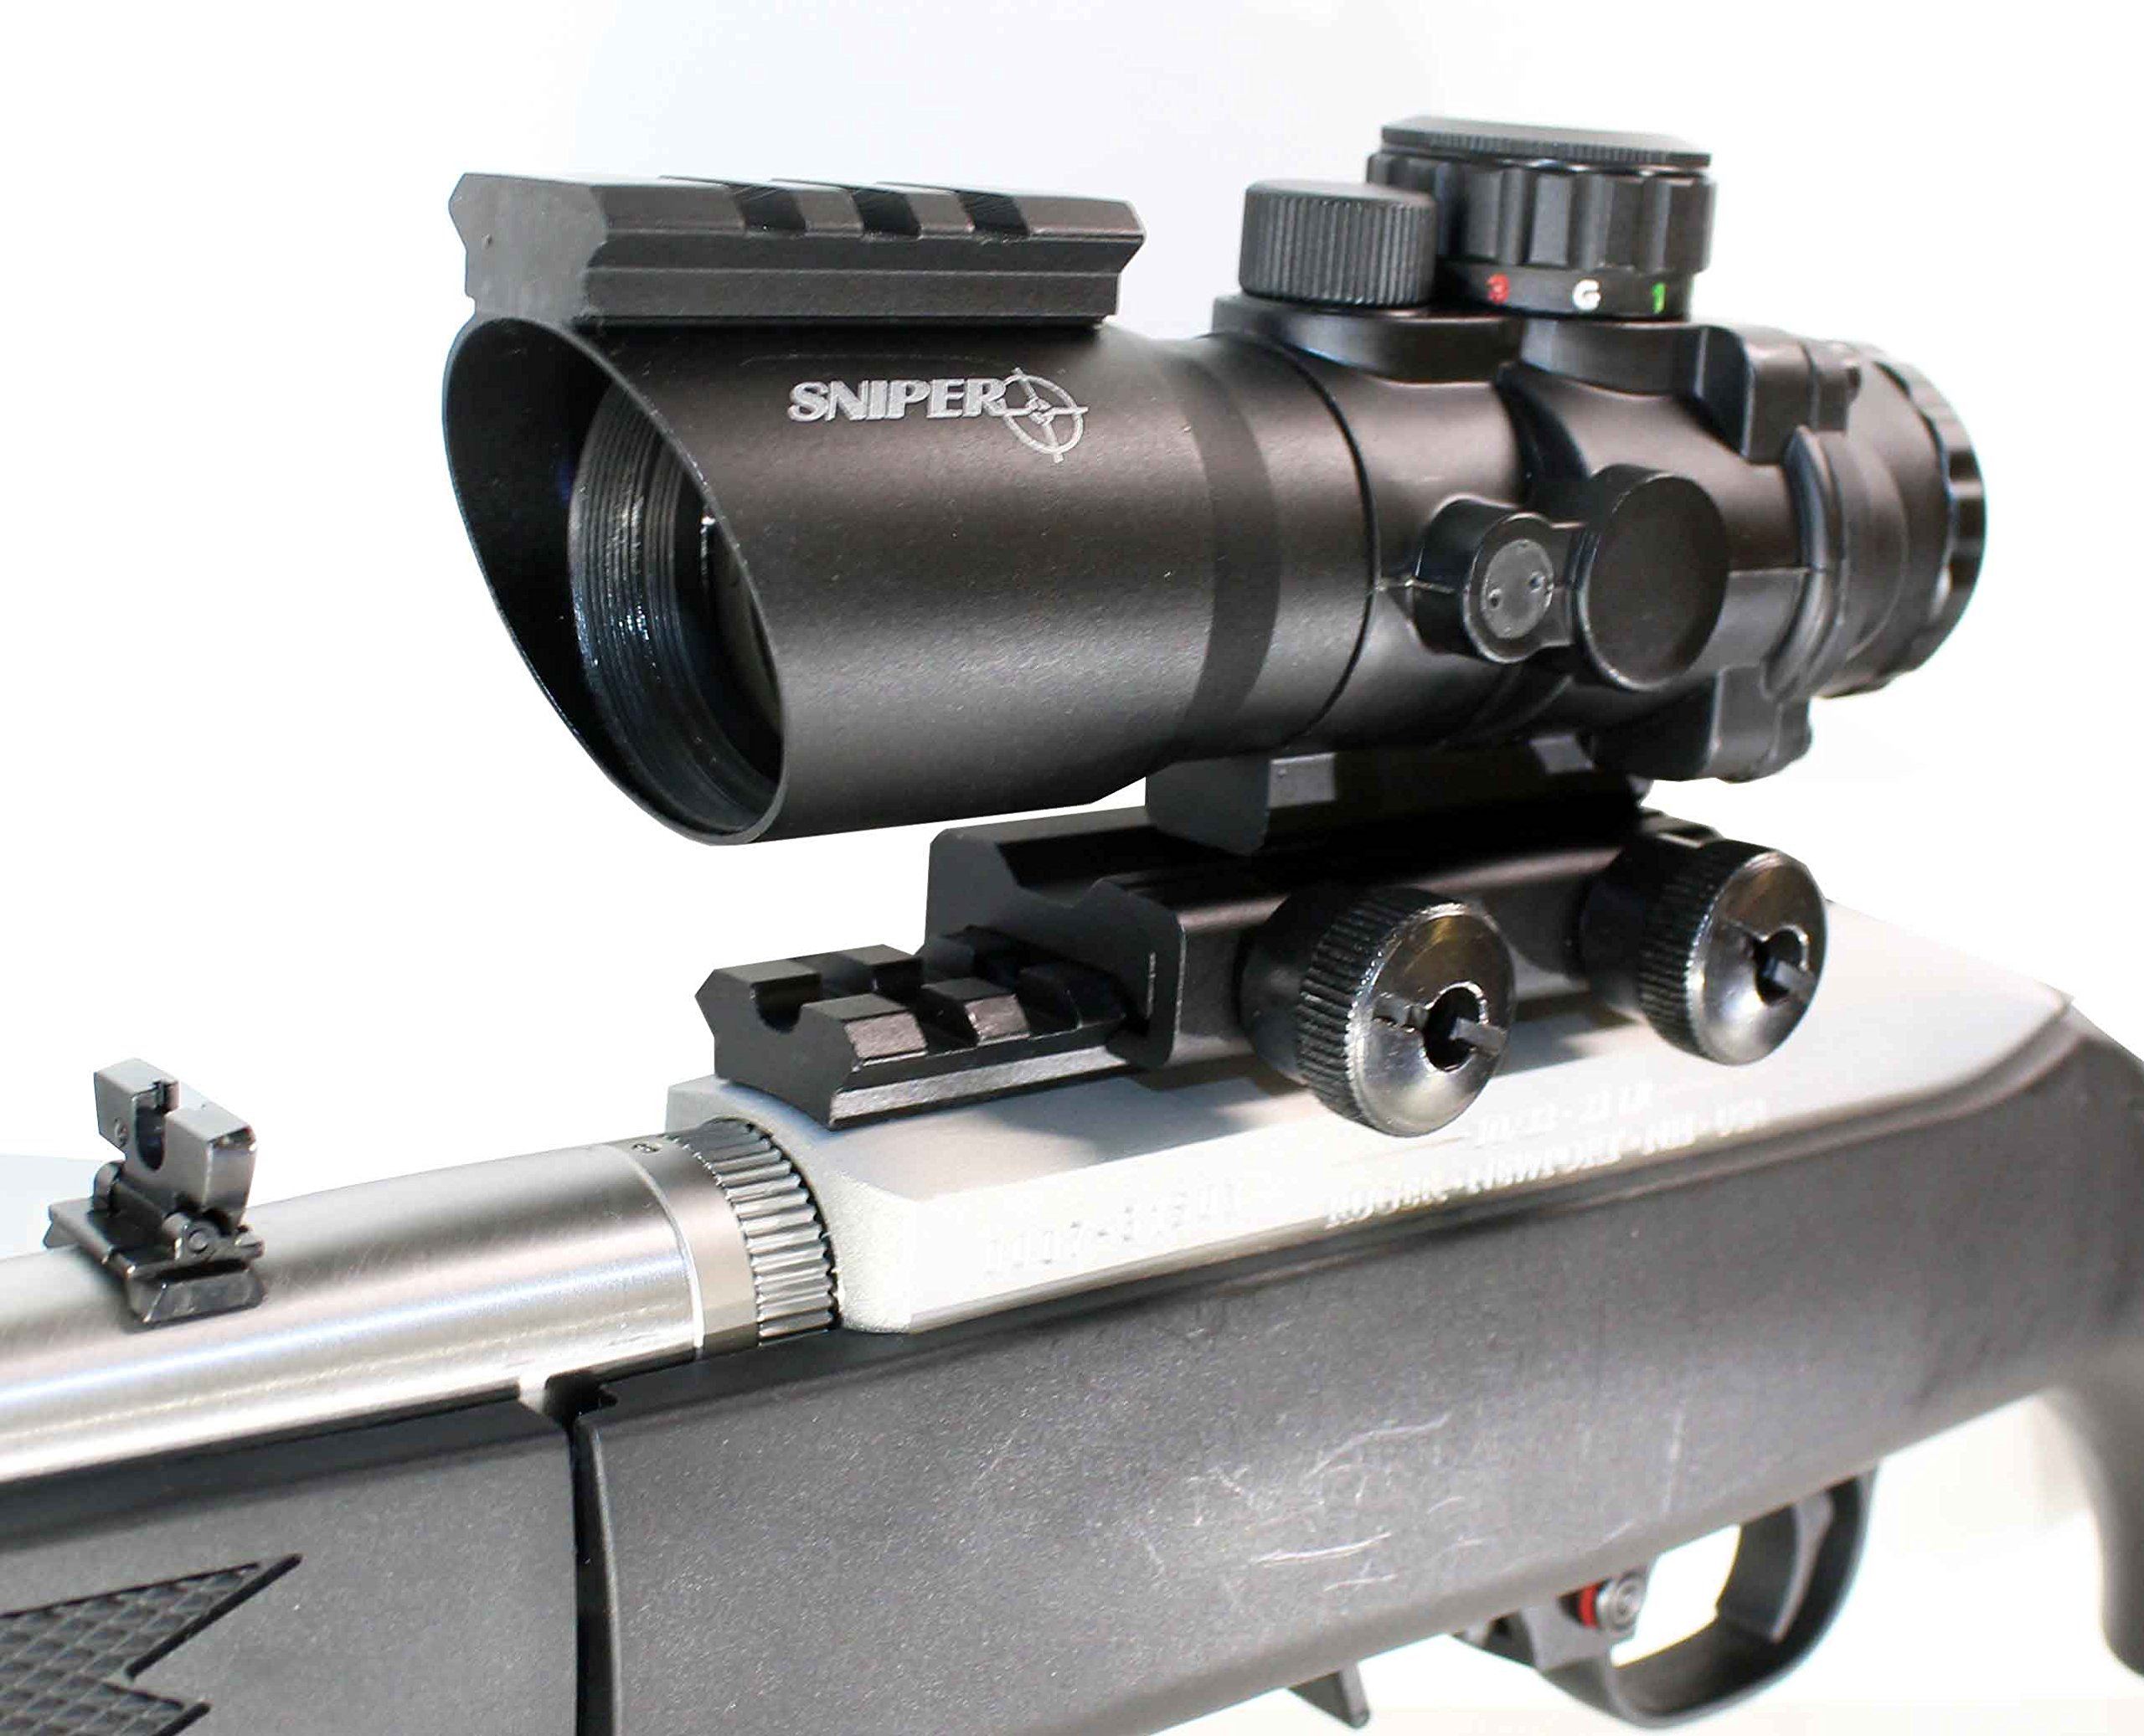 Trinity Ruger 10/22 Combo Sniper 4x32 Riflescope With 1022 Scope Mount And Rings NEW, single rail mount. by Trinity